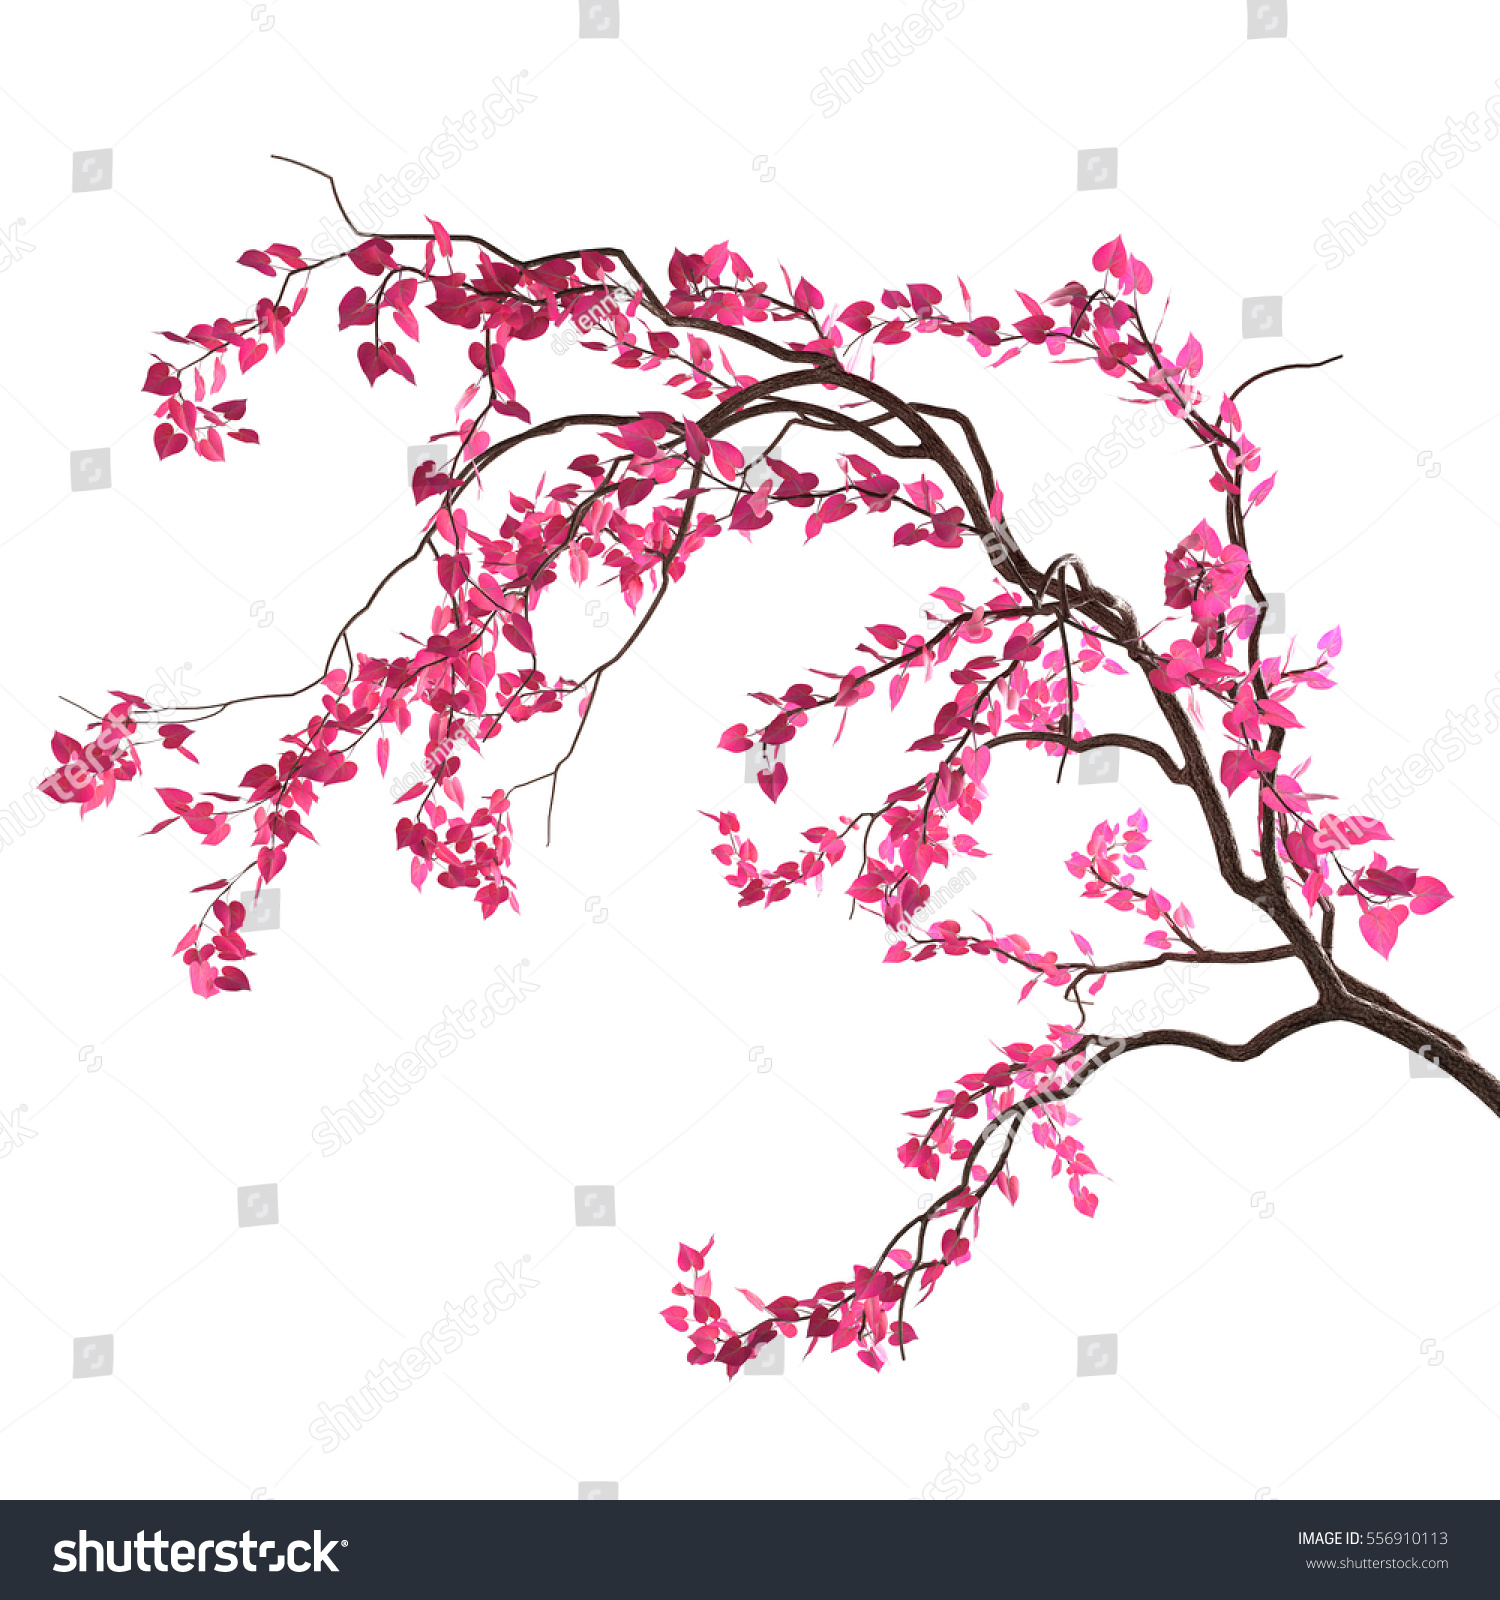 Royalty Free Stock Illustration Of Love Tree Branch Pink Heartshaped